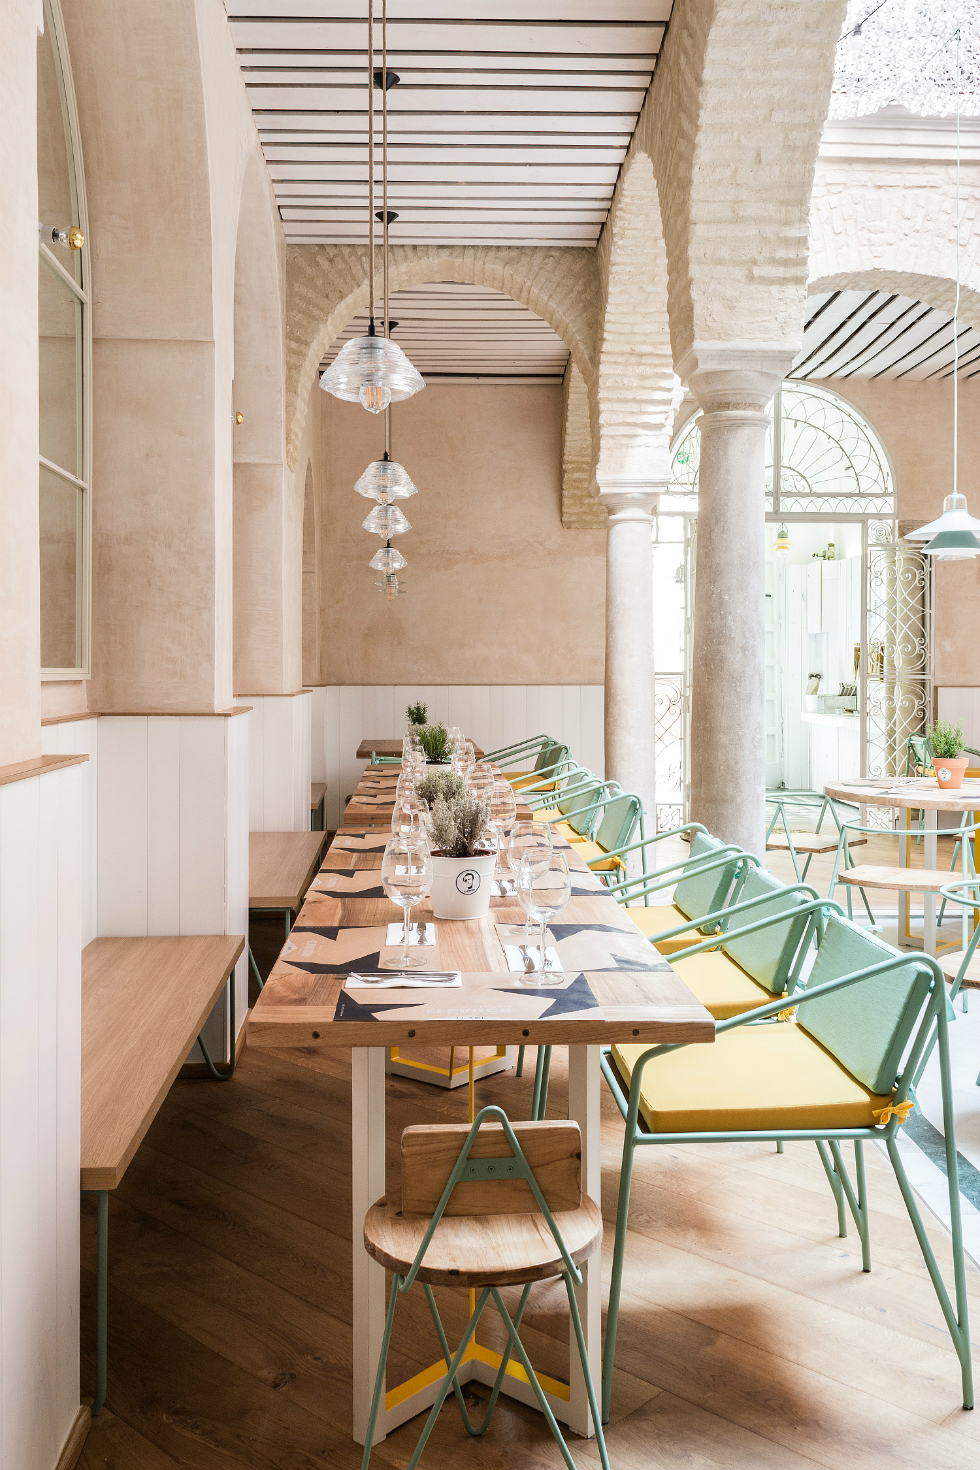 Spanish restaurant with a great design El Pintón - 1 spanish restaurantSpanish restaurant with a great design: El PintónSpanish restaurant with a great design El Pint  n 1